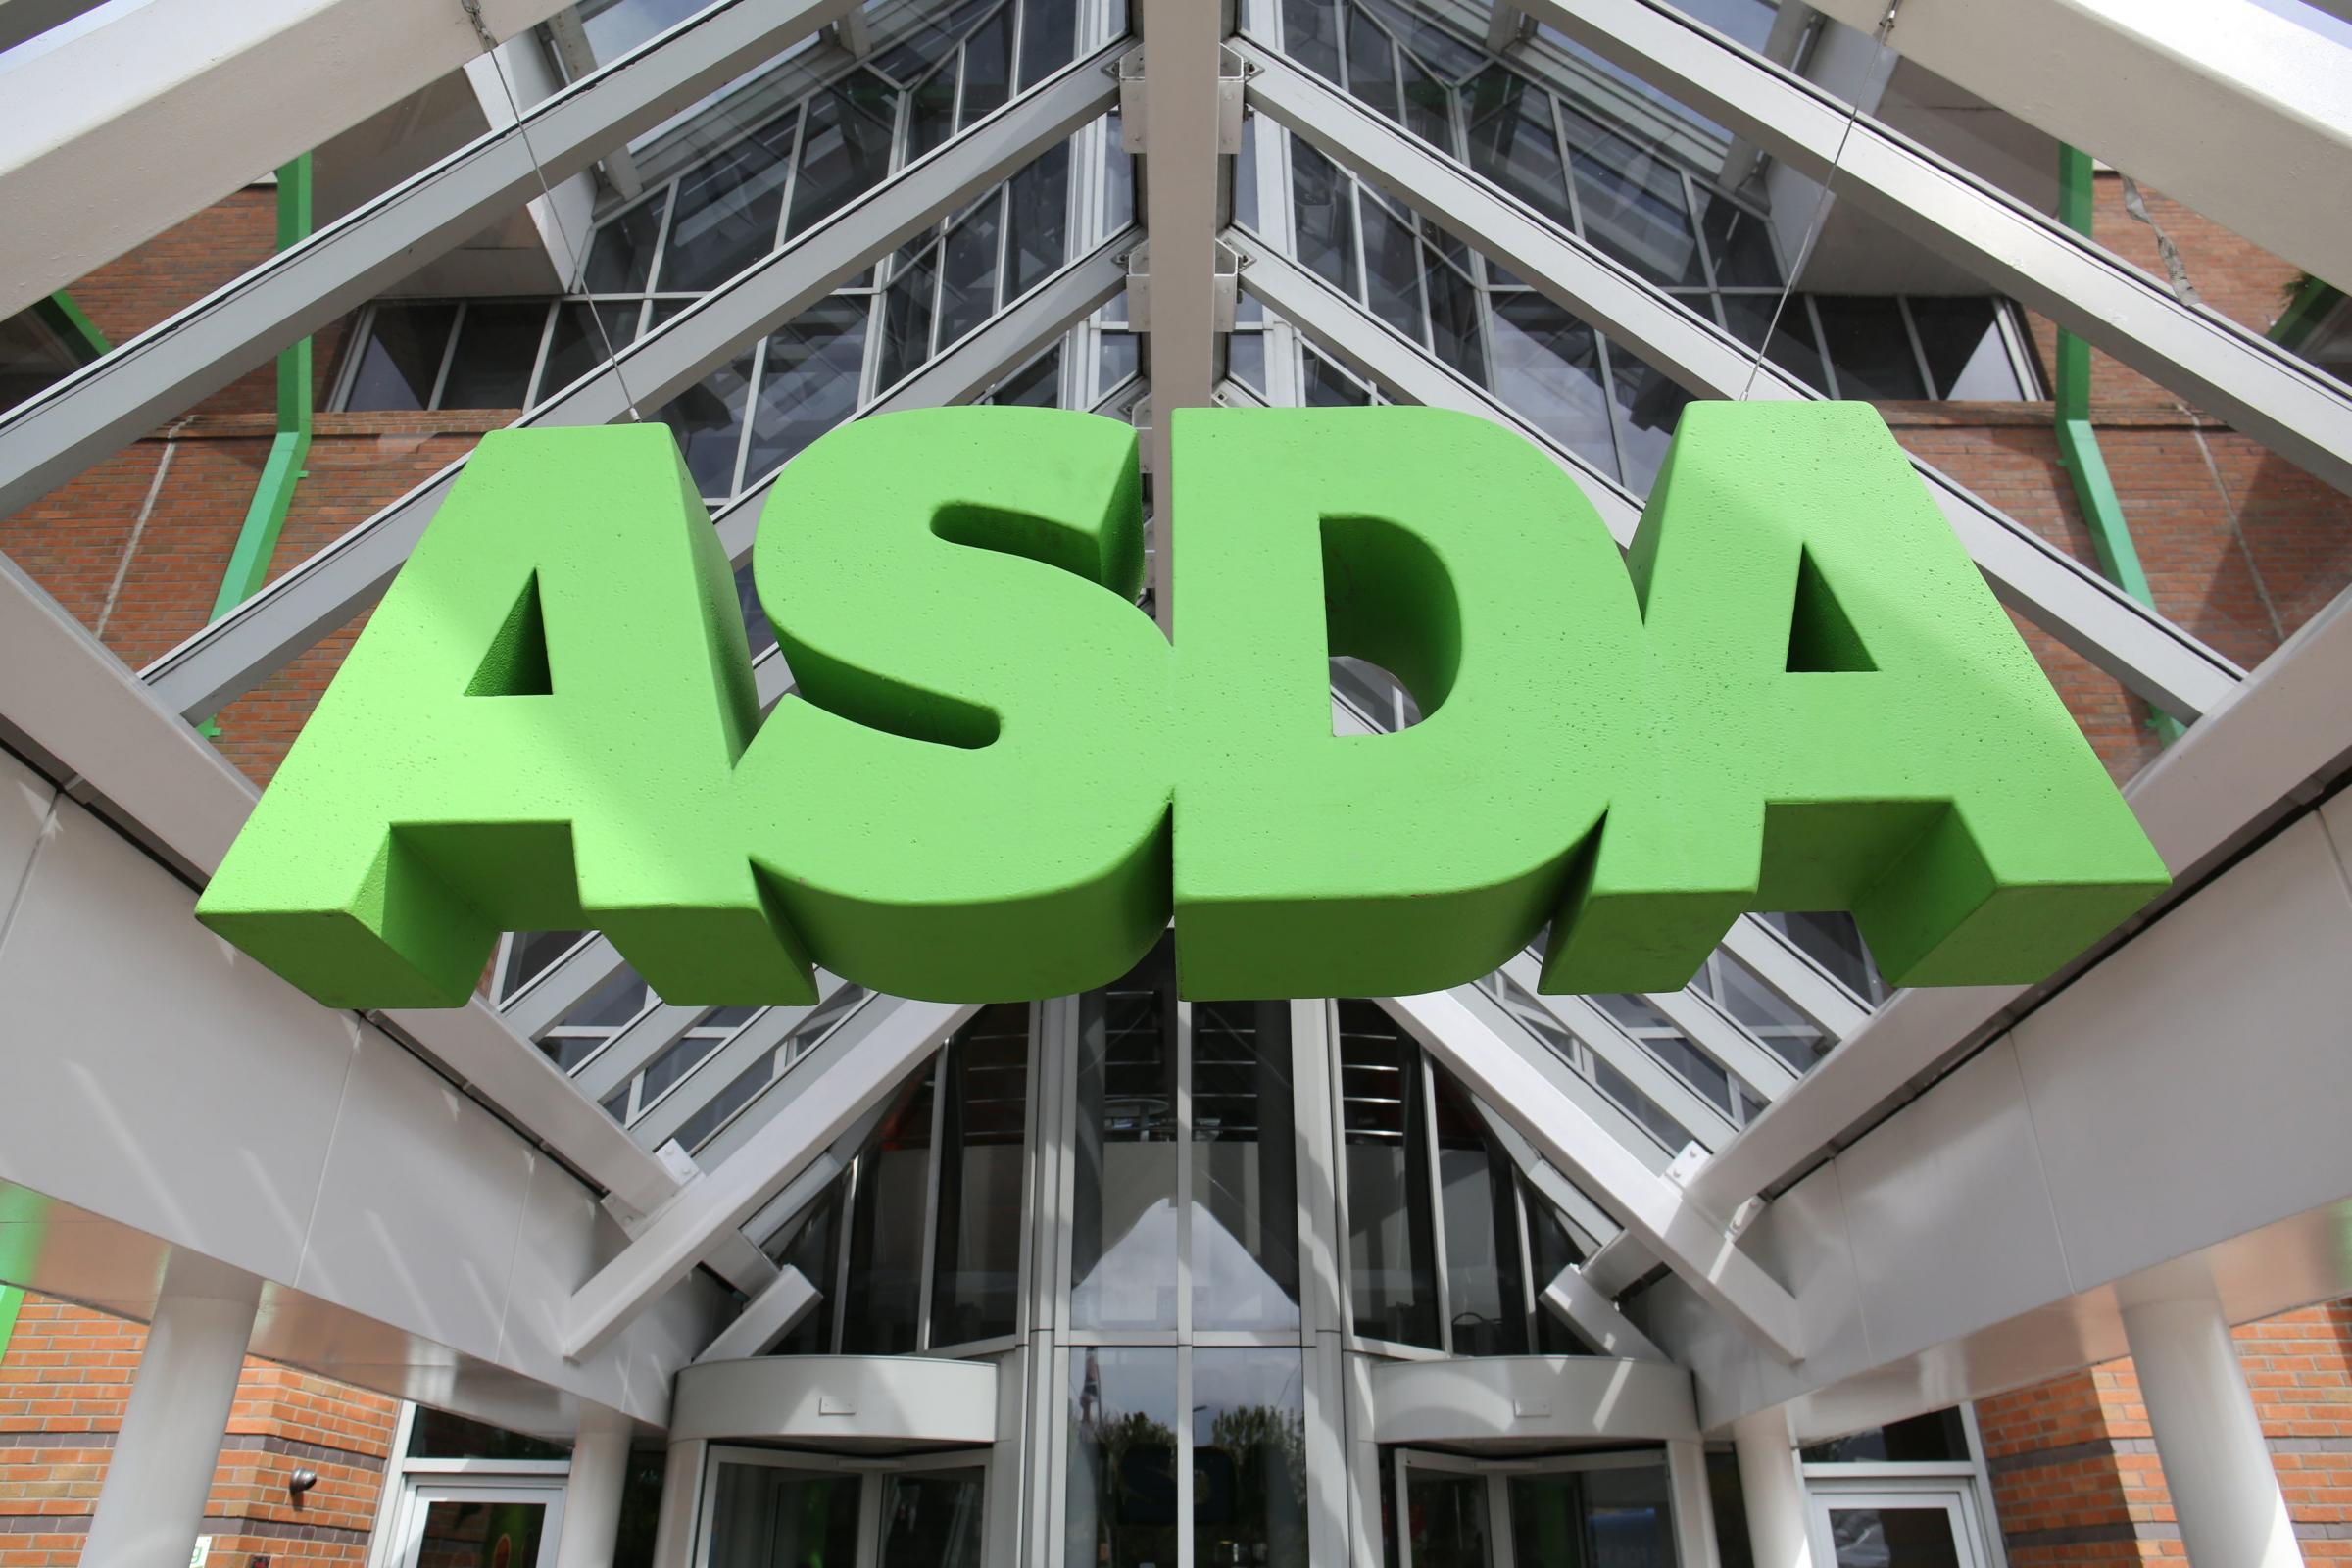 File photo dated 01/05/15 of an Asda sign. The supermarket giant is heading to the Court of Appeal in a long-running battle over equal pay. PRESS ASSOCIATION Photo. Issue date: Wednesday October 10, 2018. The Employment Appeal Tribunal (EAT) decided last